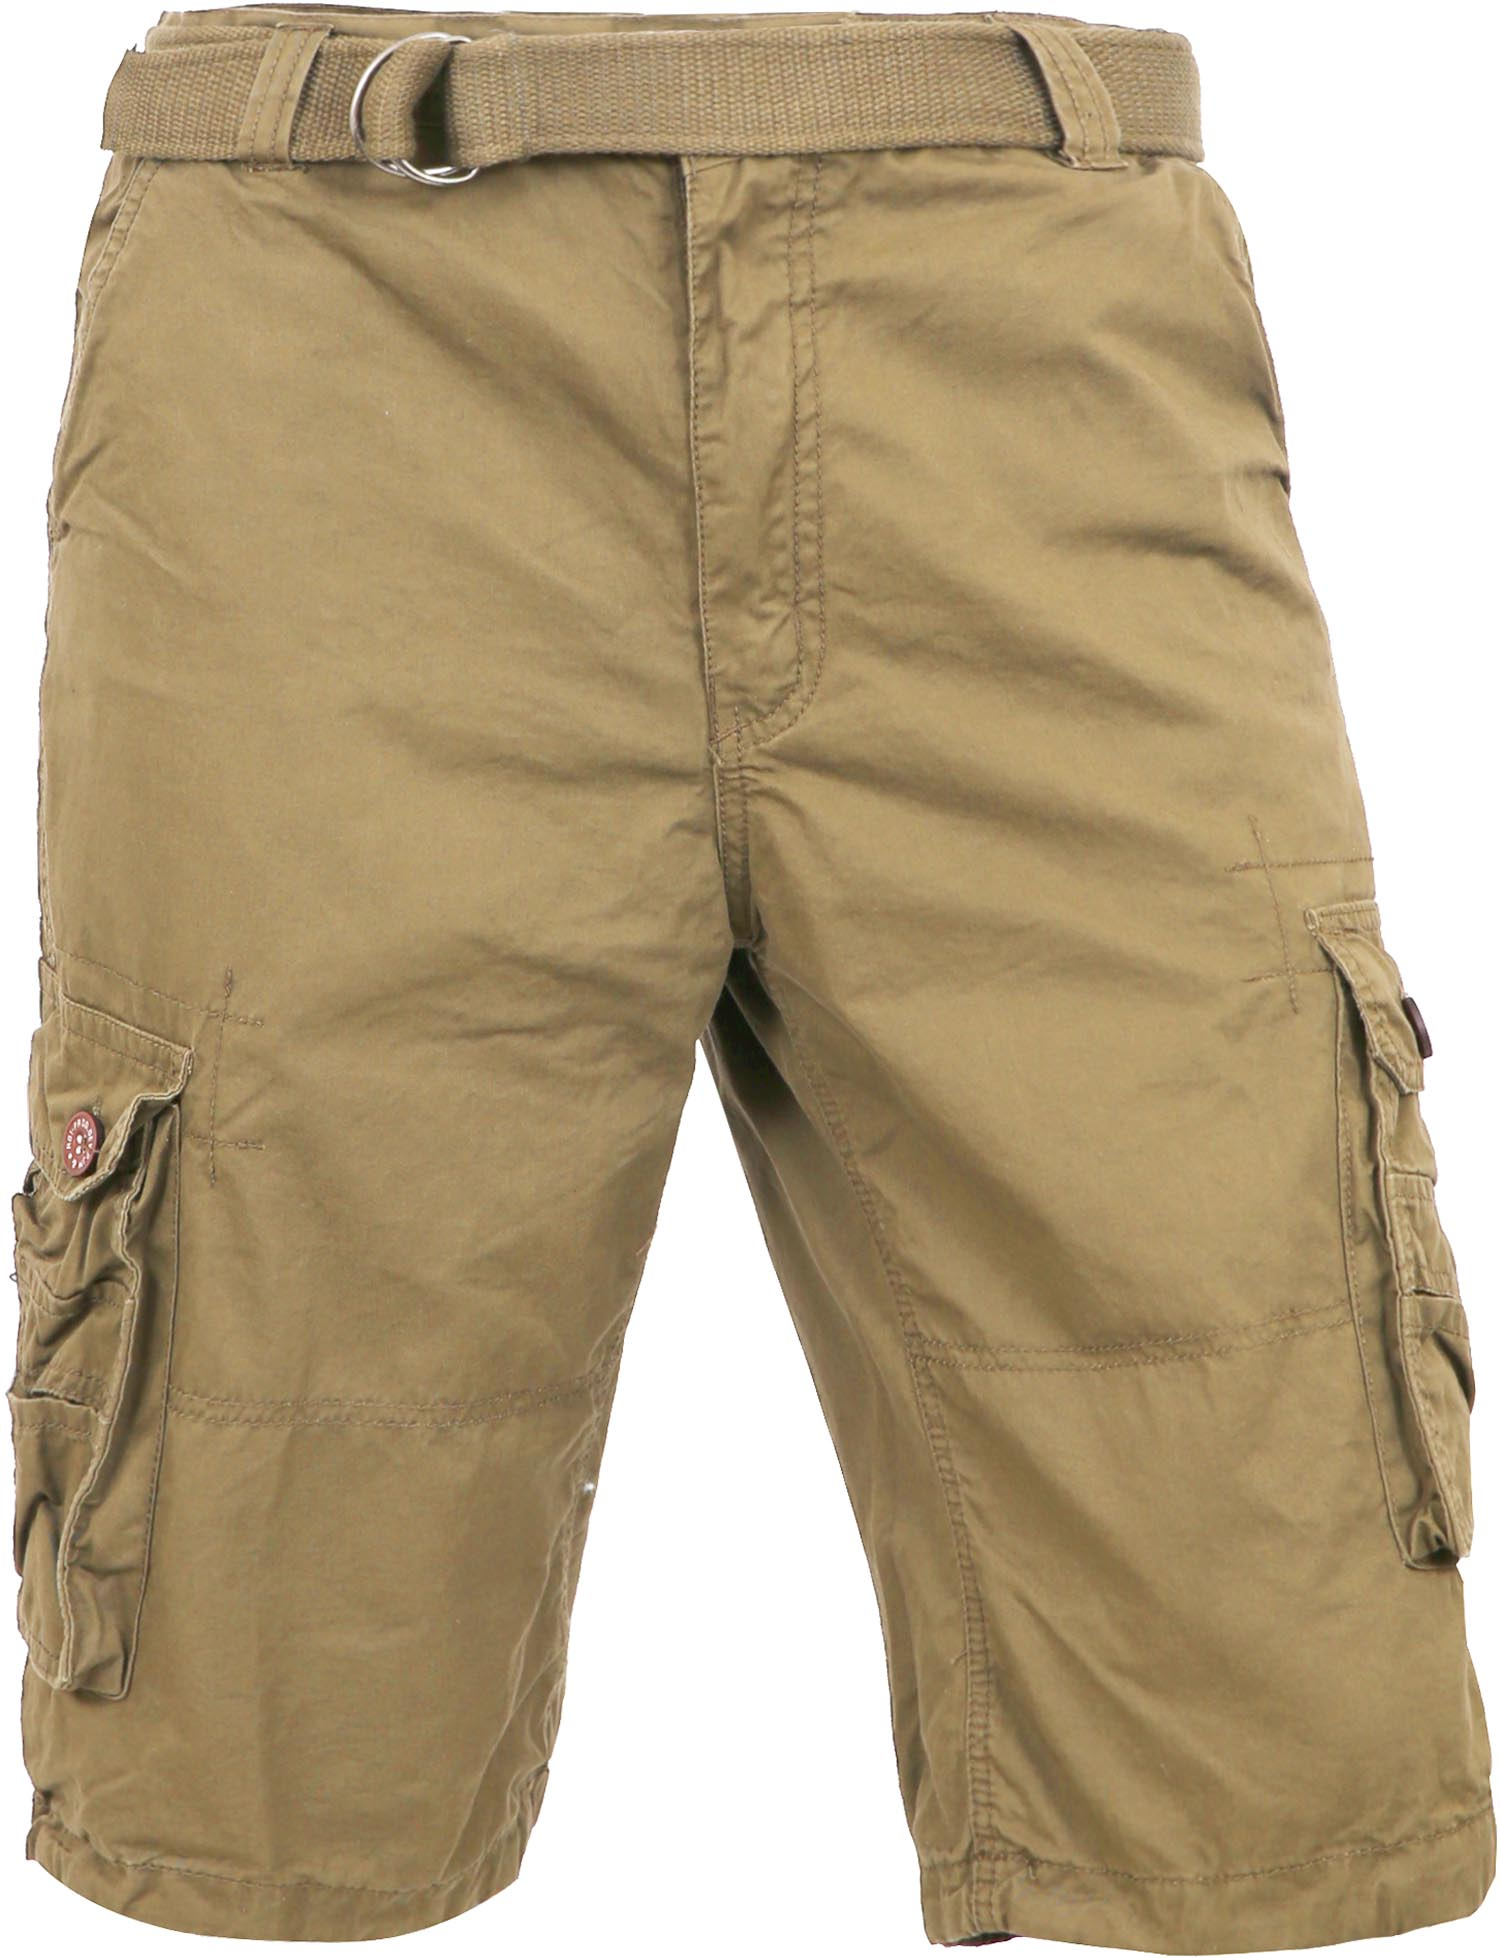 Men's Premium Cargo Shorts with Belt